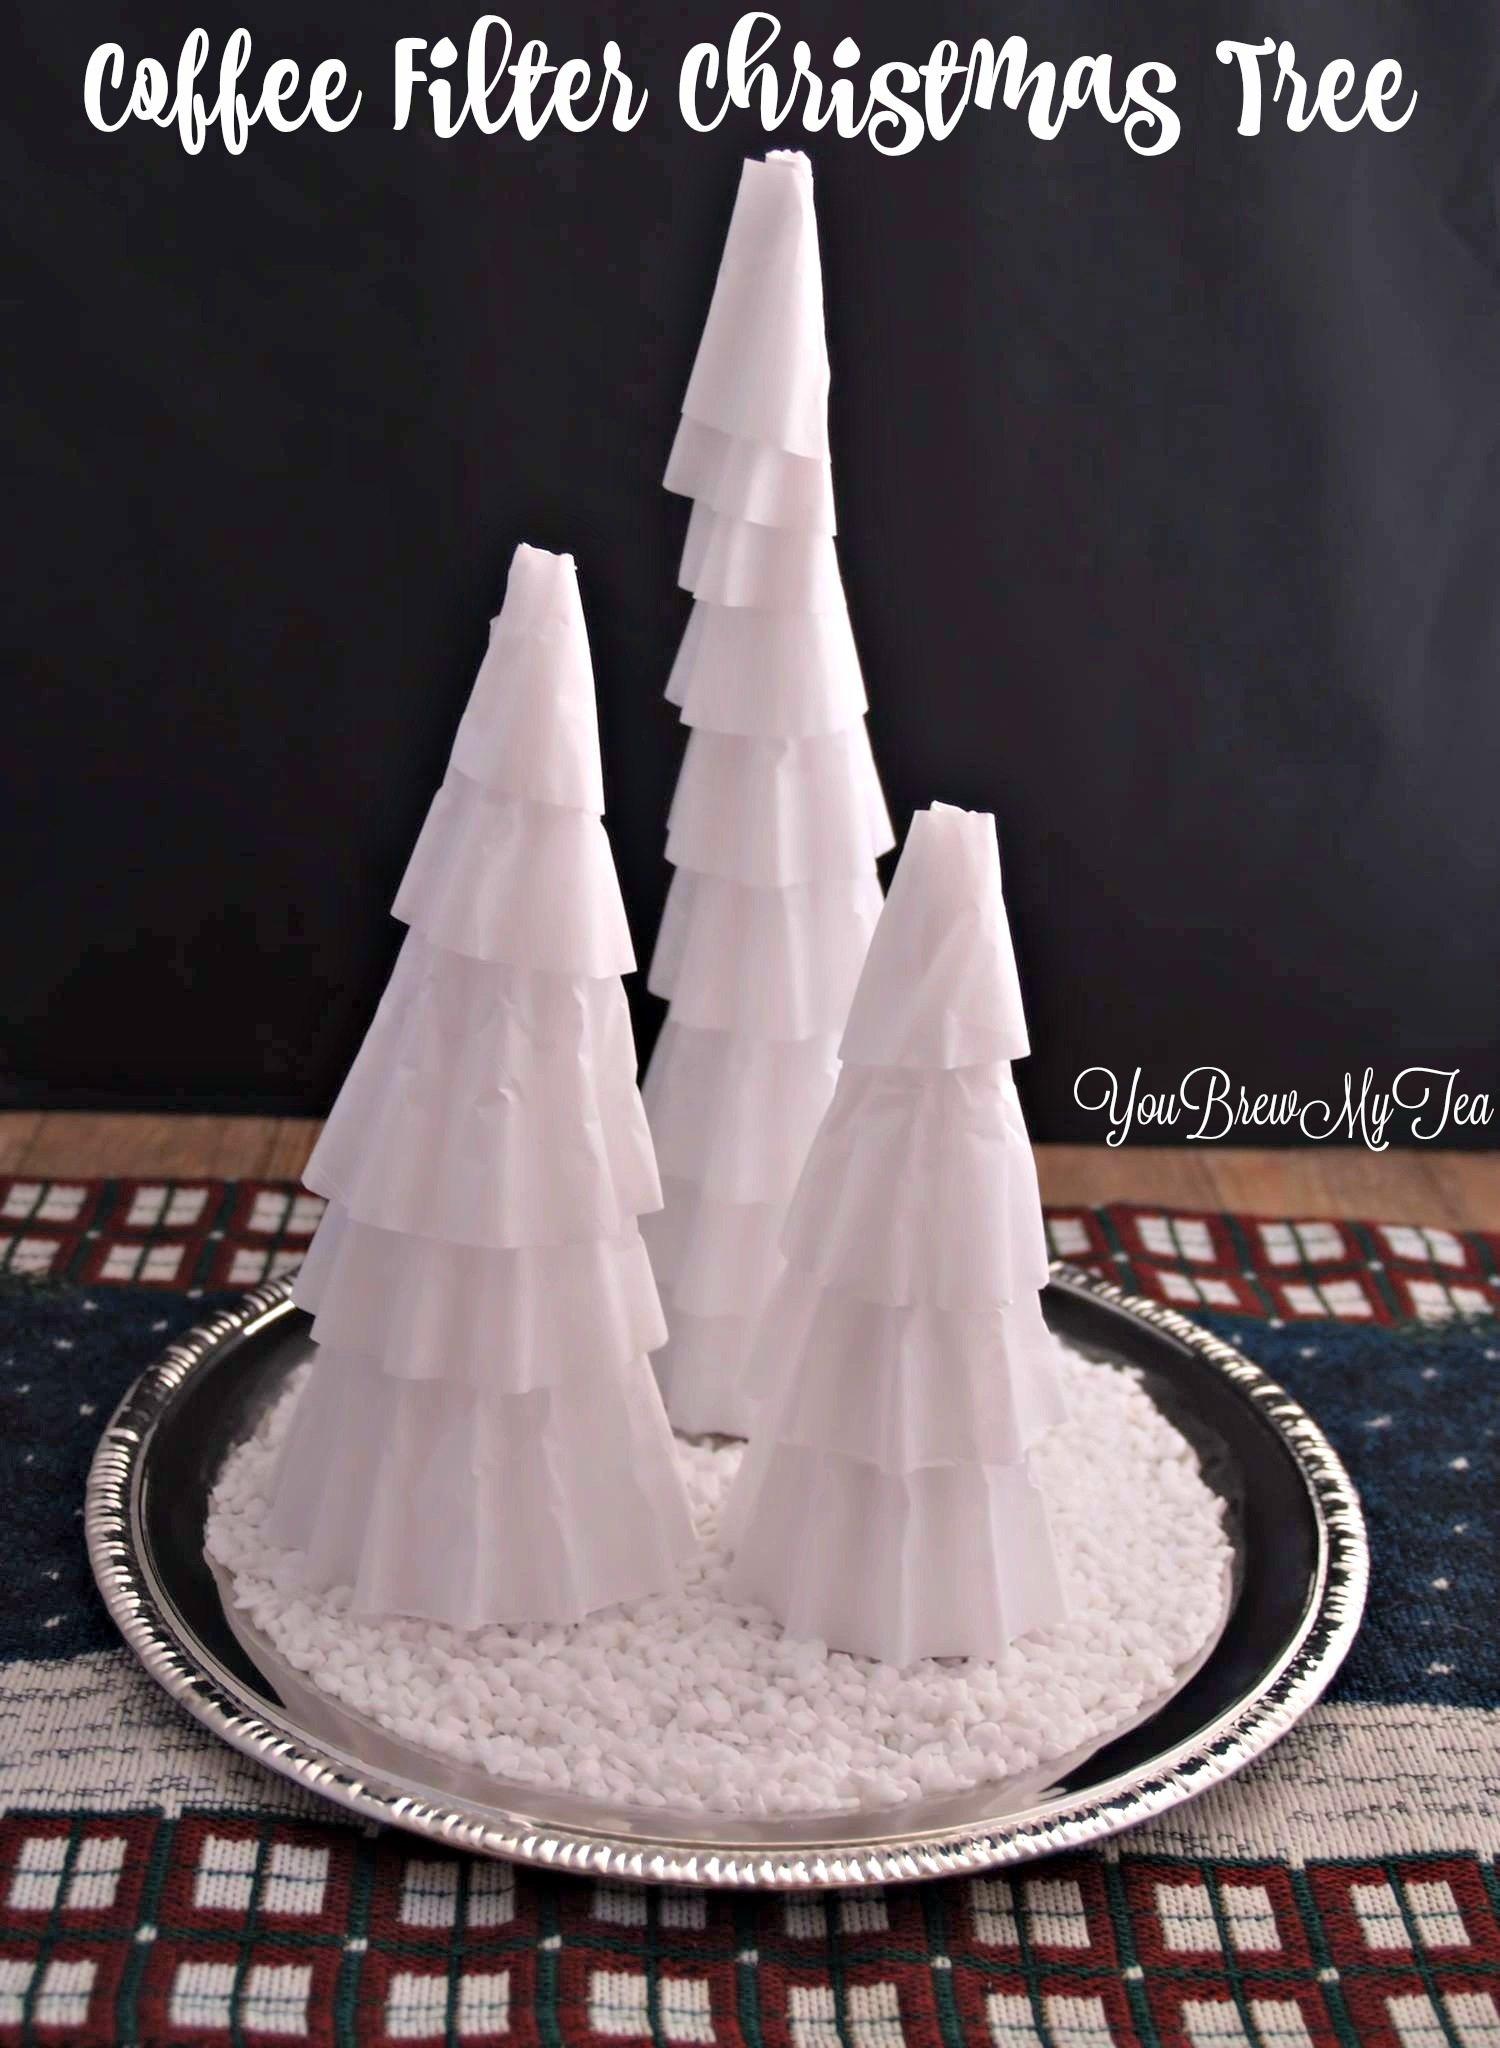 Coffee Filter Christmas Tree Centerpiece